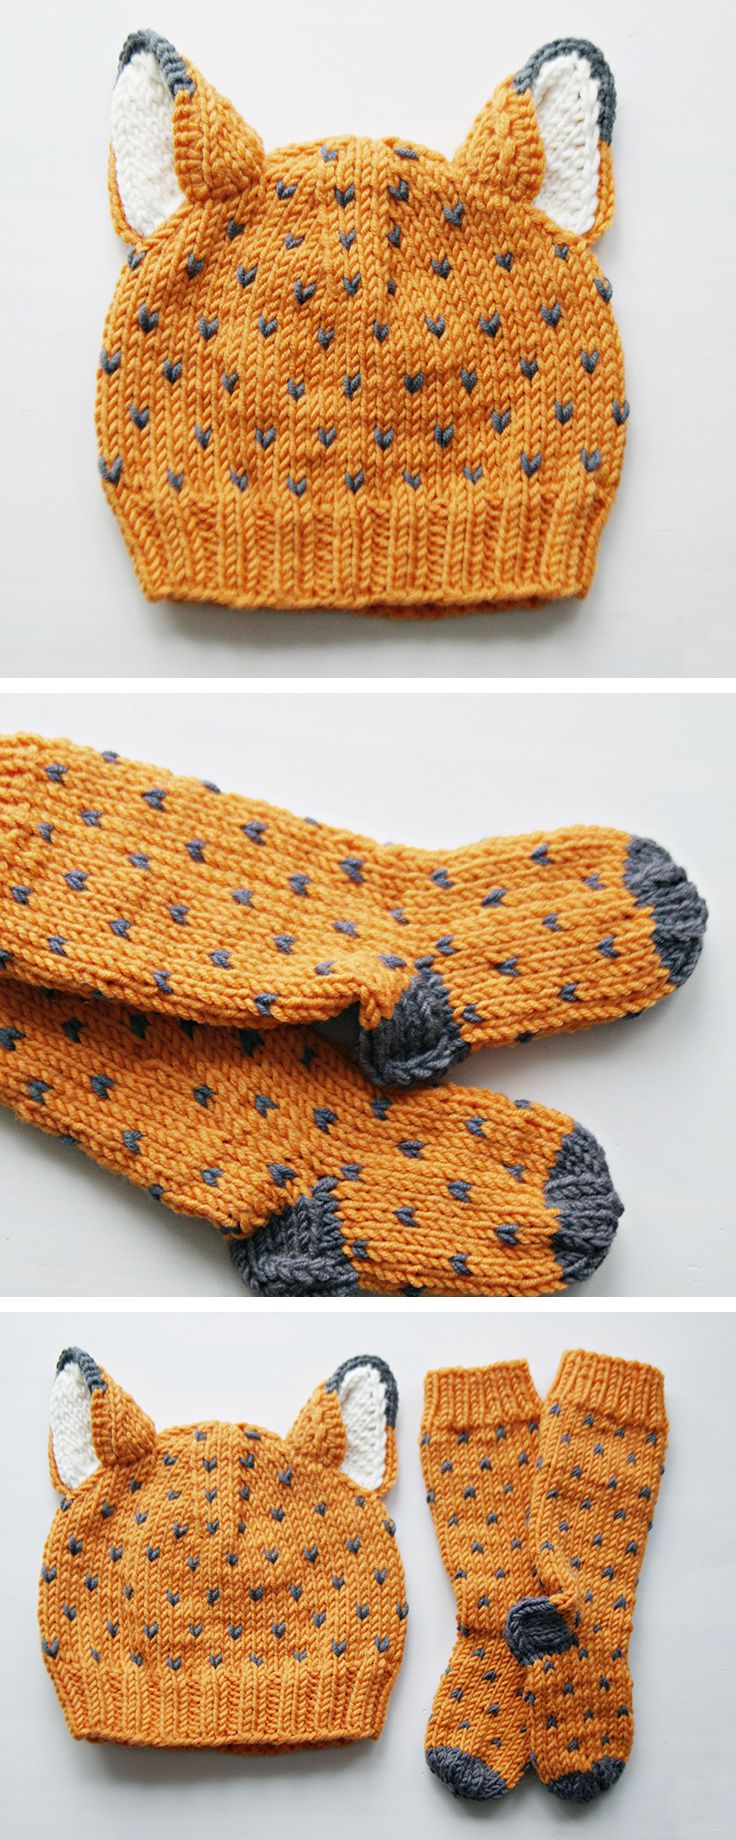 Gestrickte Winterkleidung für Babys: Mütze und Socken im Fuchs Design, Babykleidung / cute baby fashion for the winter season: baby beanie and socks with fox design made by Regenbogenlaune via DaWanda.com